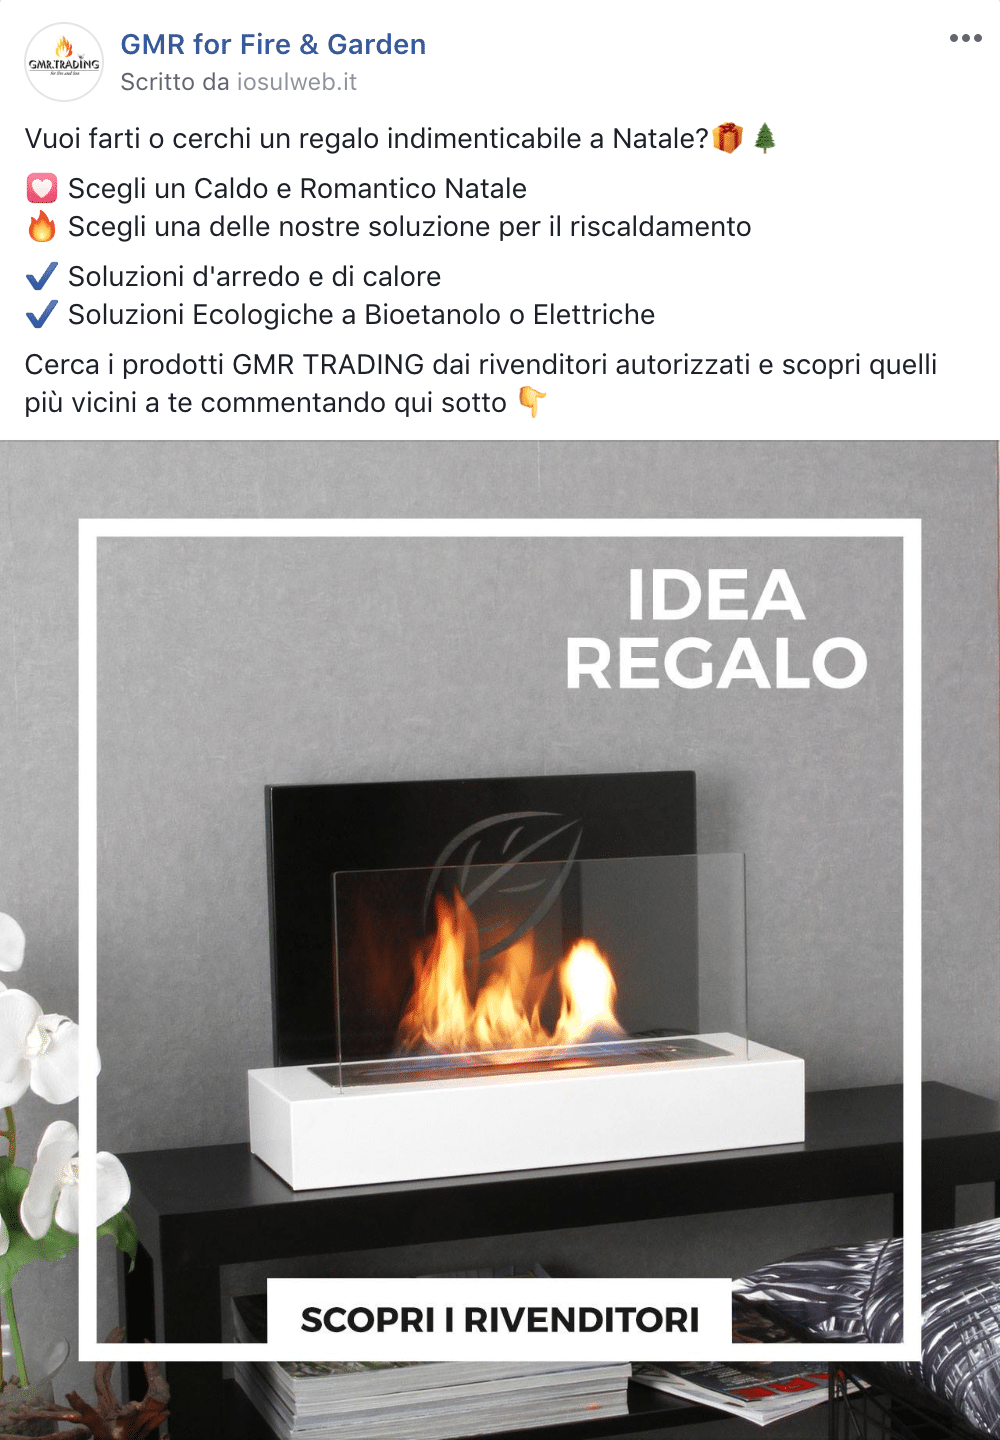 Esempio Brand AwarenessPagina Facebook: GMR for Fire & Garden